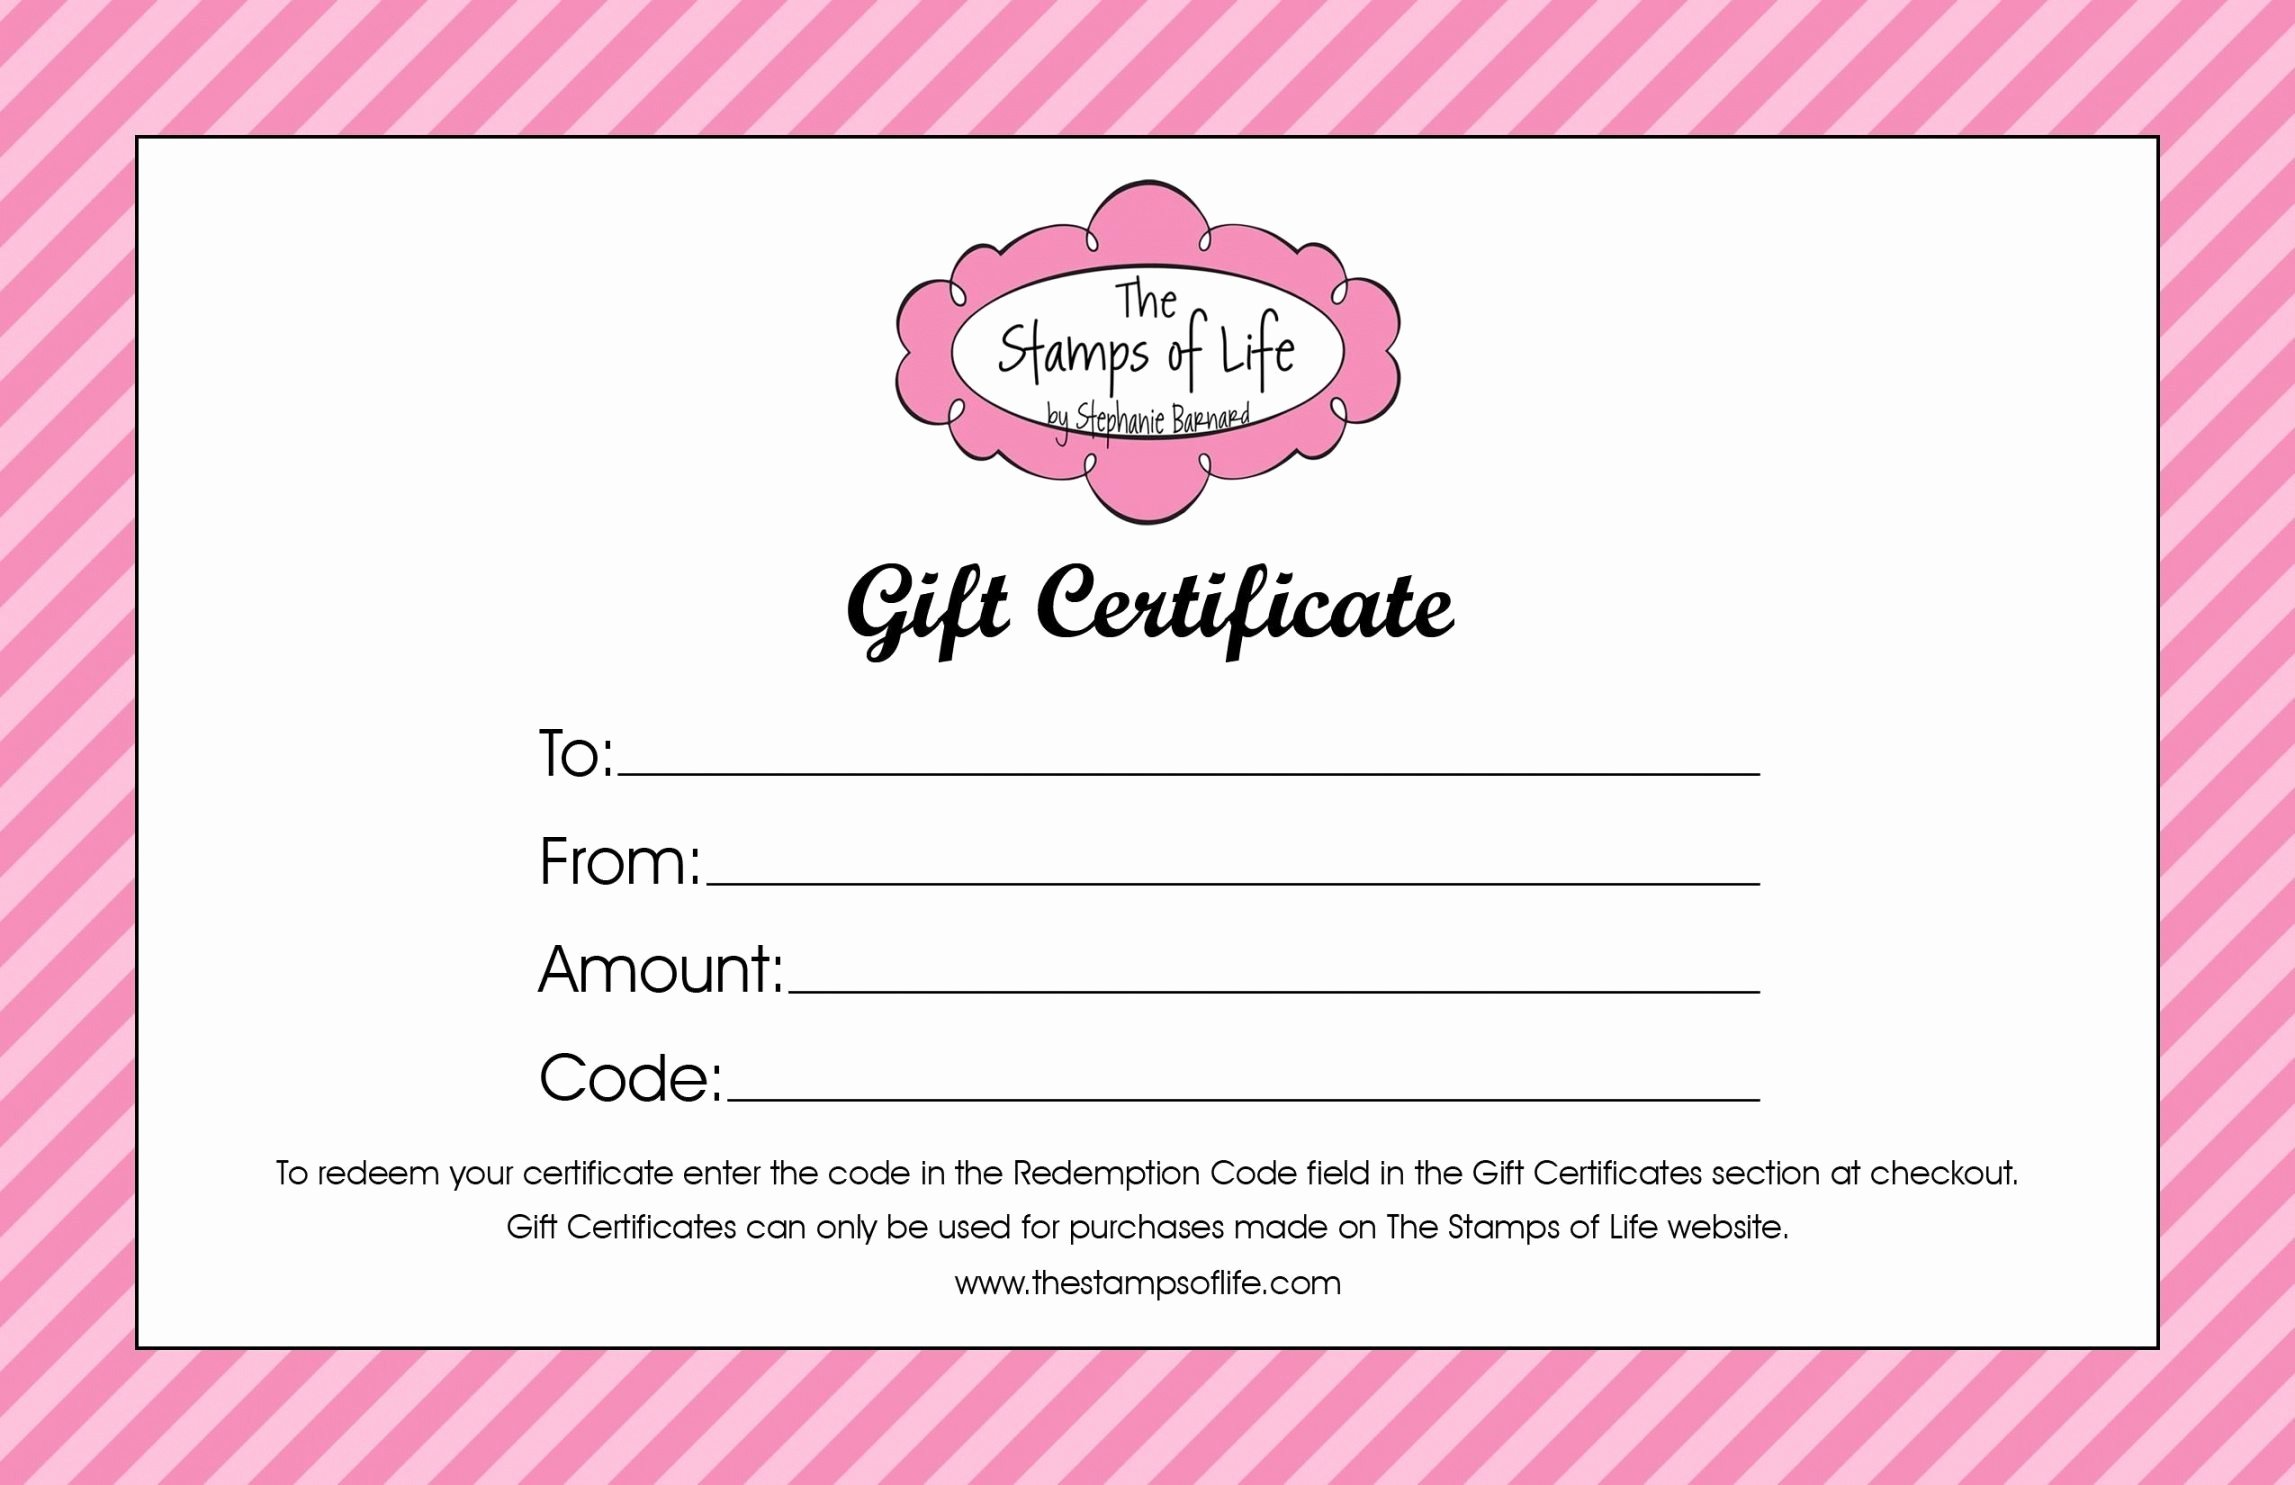 Hair Salon Gift Certificate Awesome Beauty Salon Gift Certificate Template